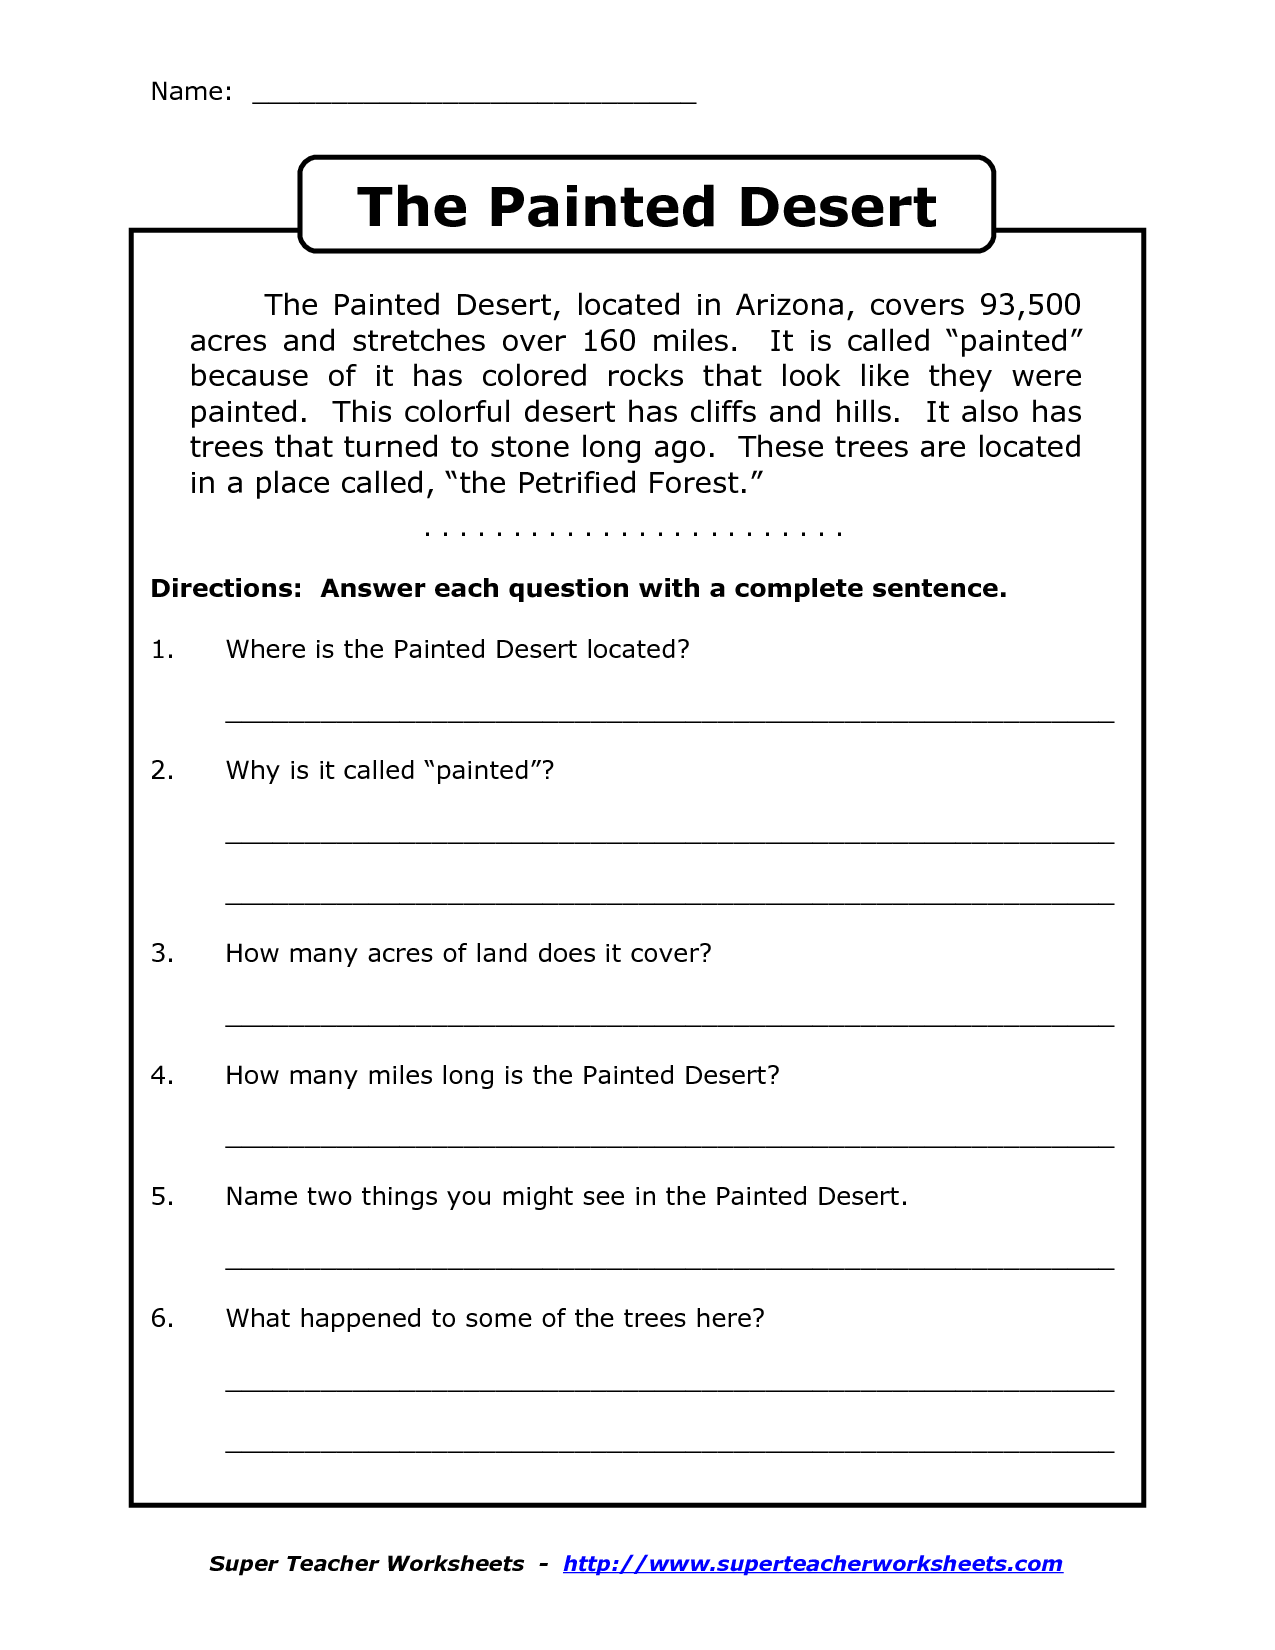 Worksheets Comprehension Worksheets 2nd Grade enrichment language worksheets google search pinterest reading comprehension and comp